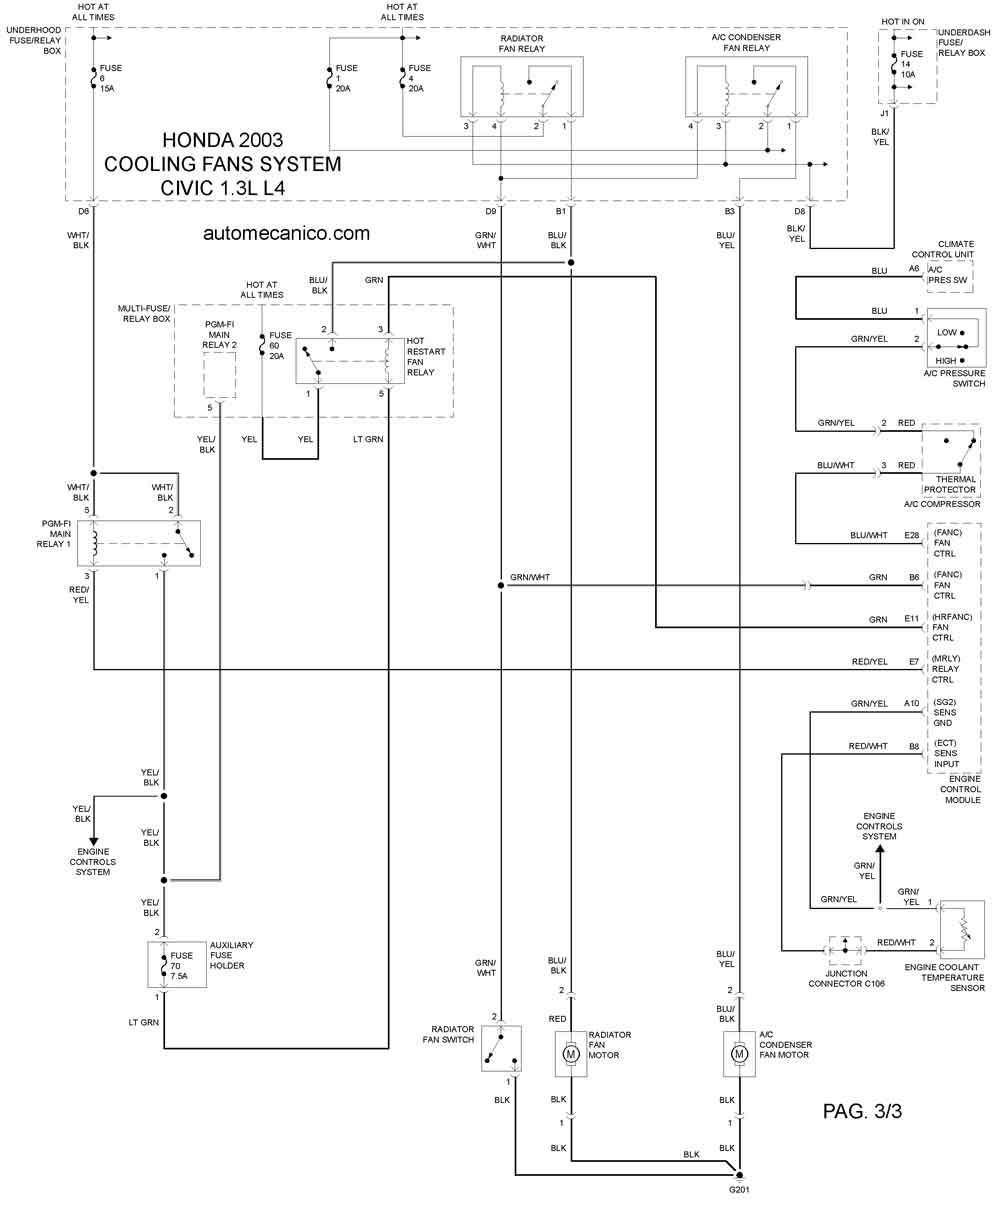 Civiccf likewise Px Automotive Illumination Shematics Eu Svg in addition Fuse Interior Check Locate The Right Fuse further Gol G Taller Muestra as well . on diagrama electrico aire acondicionado de honda civic 2003